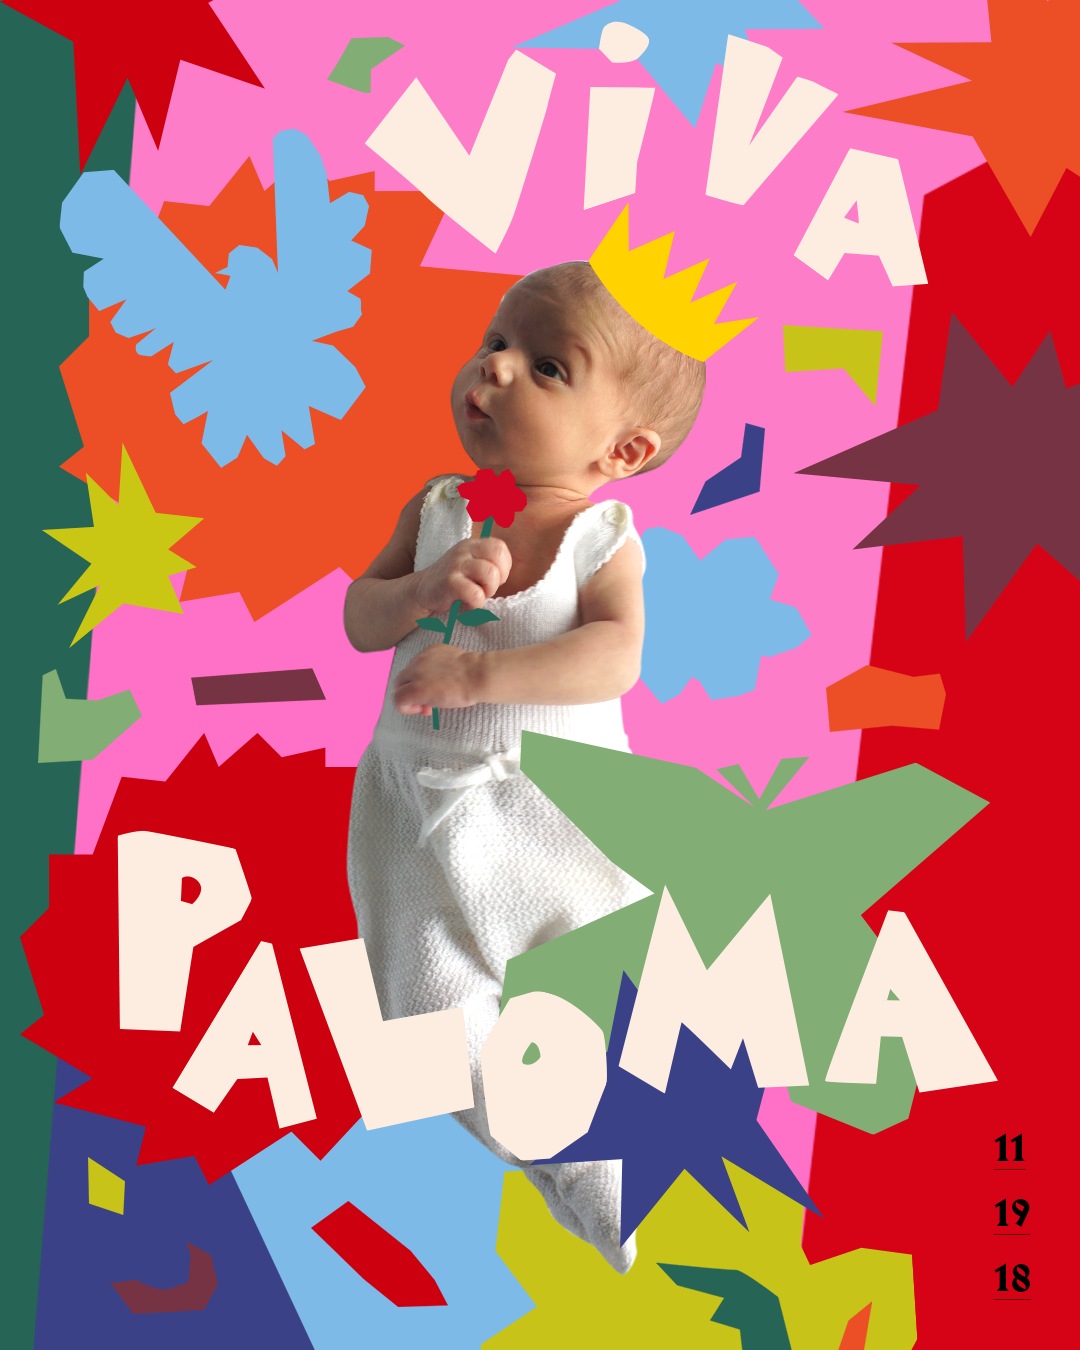 Piera_20181030_BabyAnnouncement_IG_Feed.png